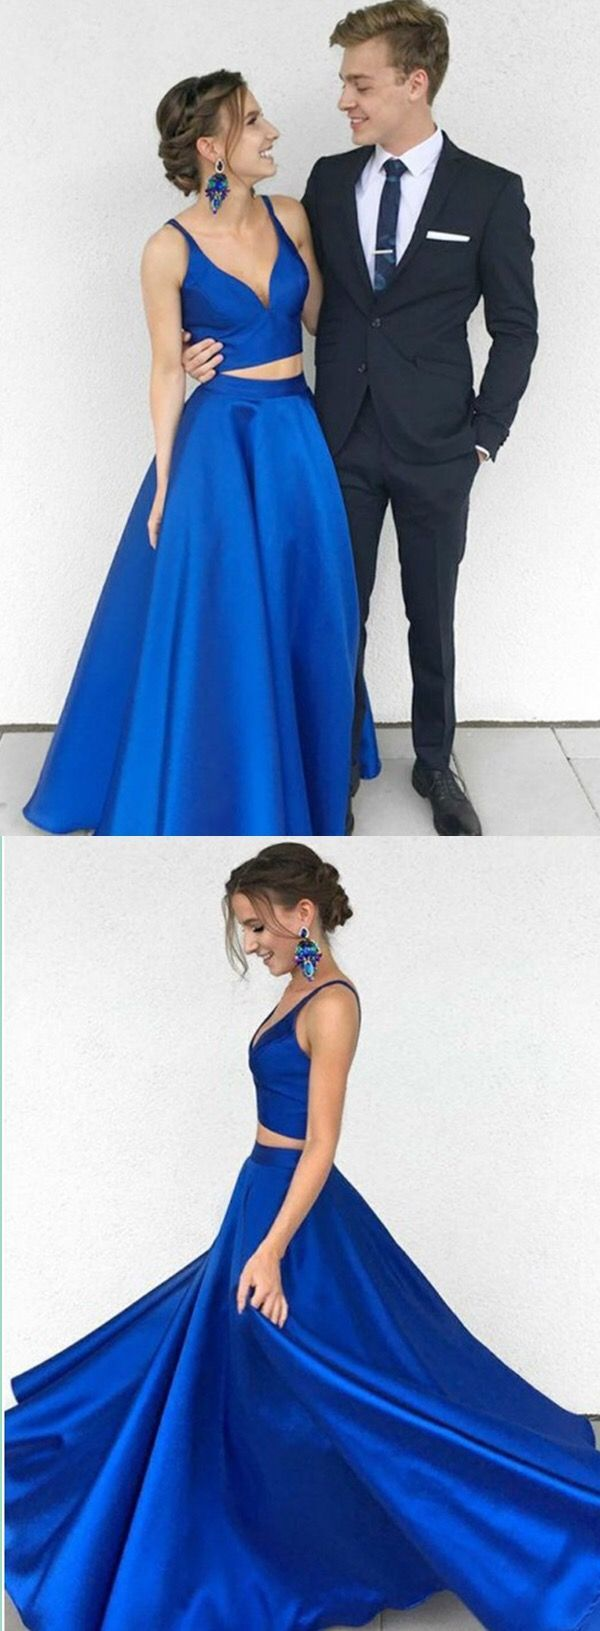 modest two piece royal blue prom dresses, elegant v neck satin party dresses, unique 2 piece evening dresses with pockets #longpromdresses